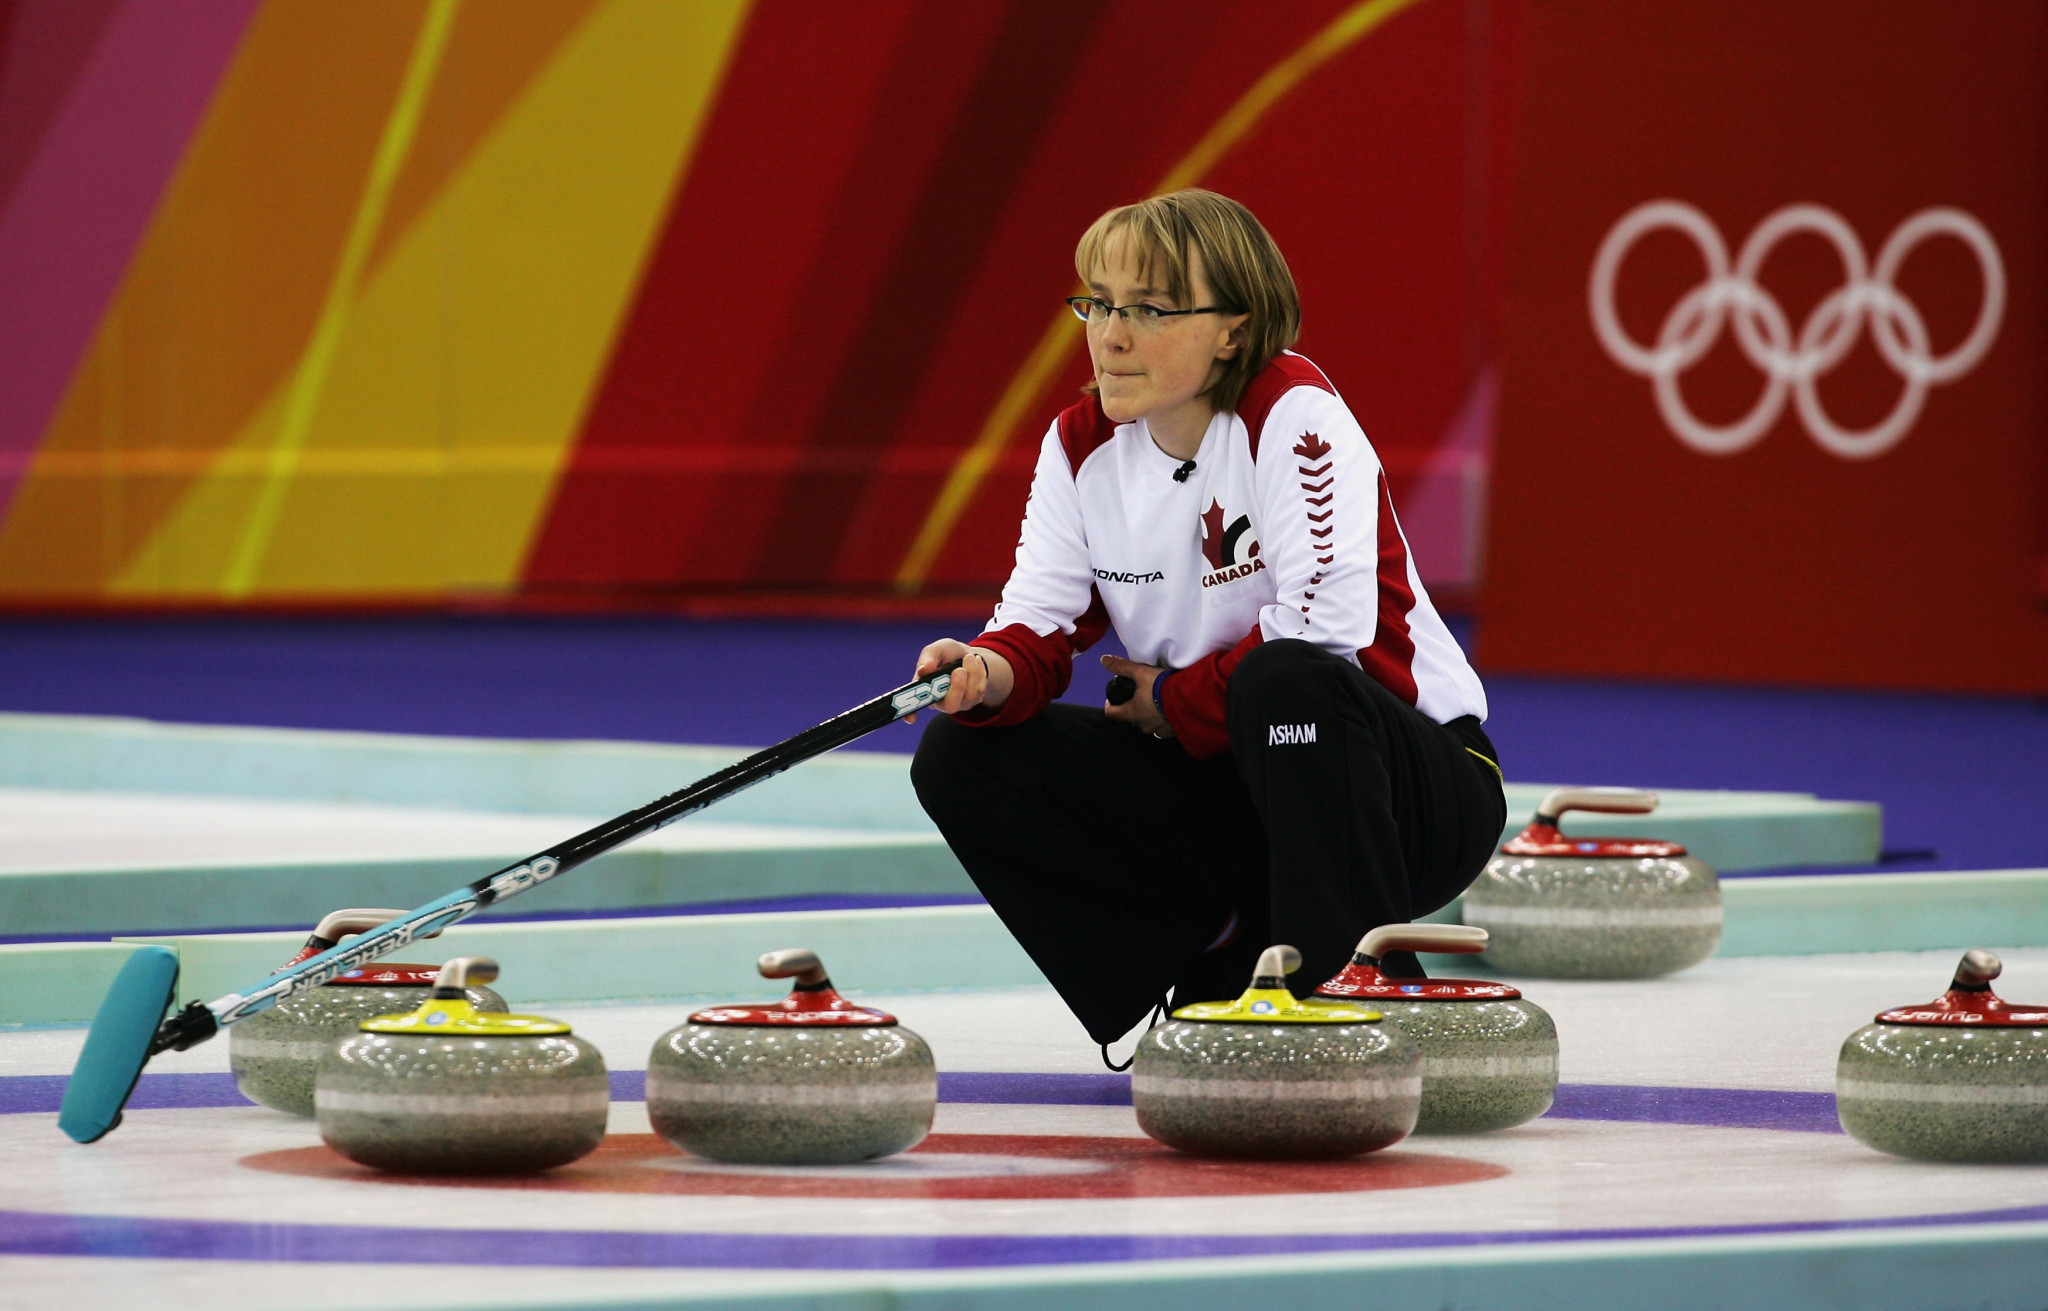 Amy Nixon won a bronze medal in the women's tournament at Turin 2006 ©Getty Images